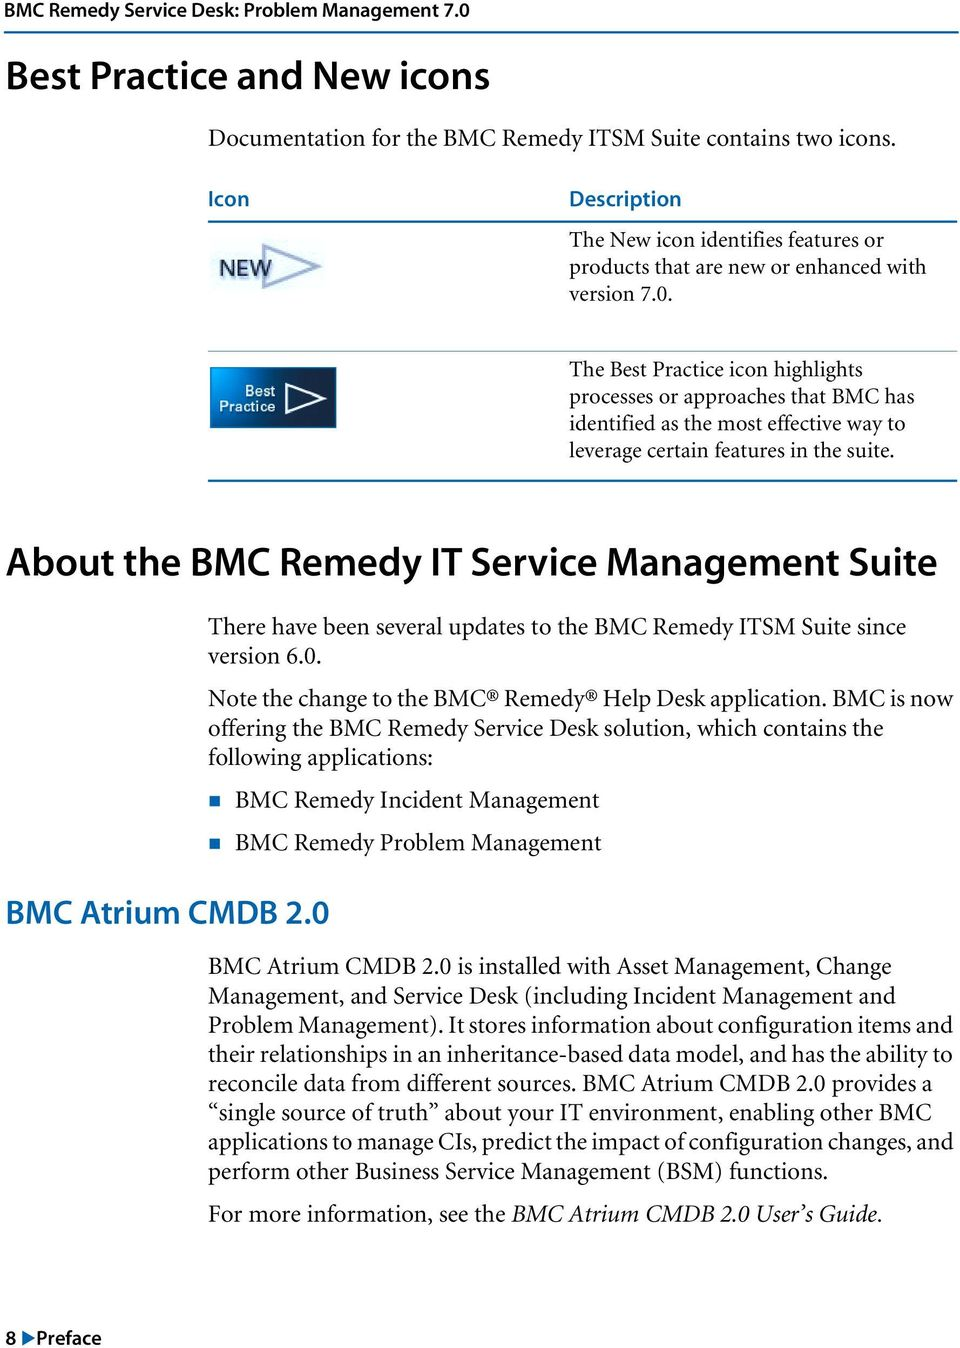 Bmc Remedy It Service Management 7.0 Configuration Guide